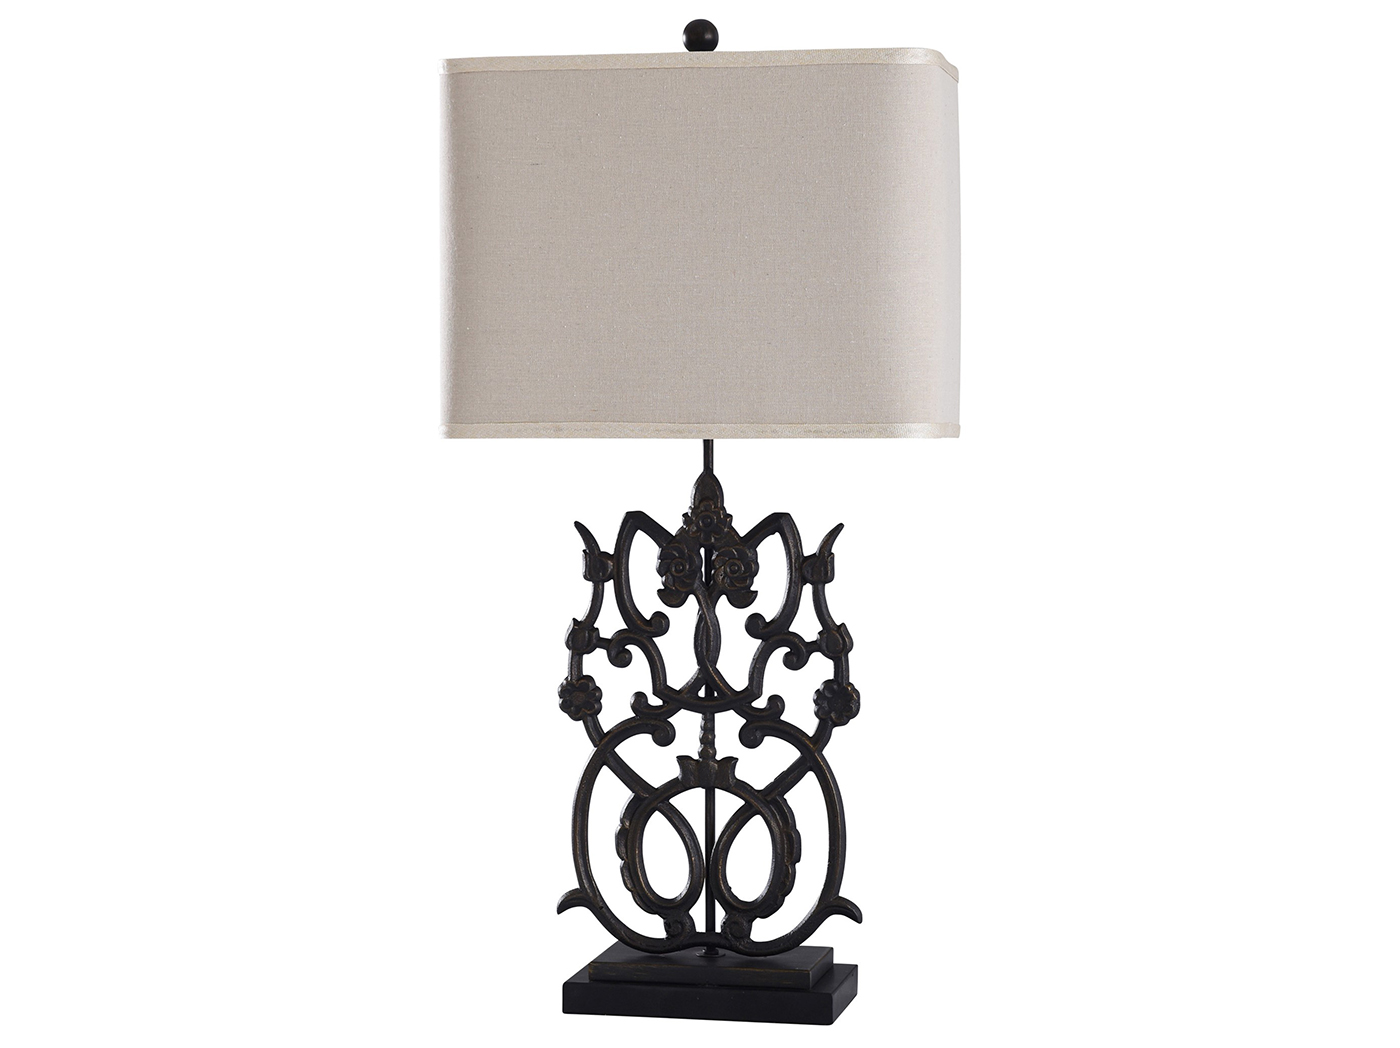 Ornate Cast Iron Table Lamp 32 H Steinhafels